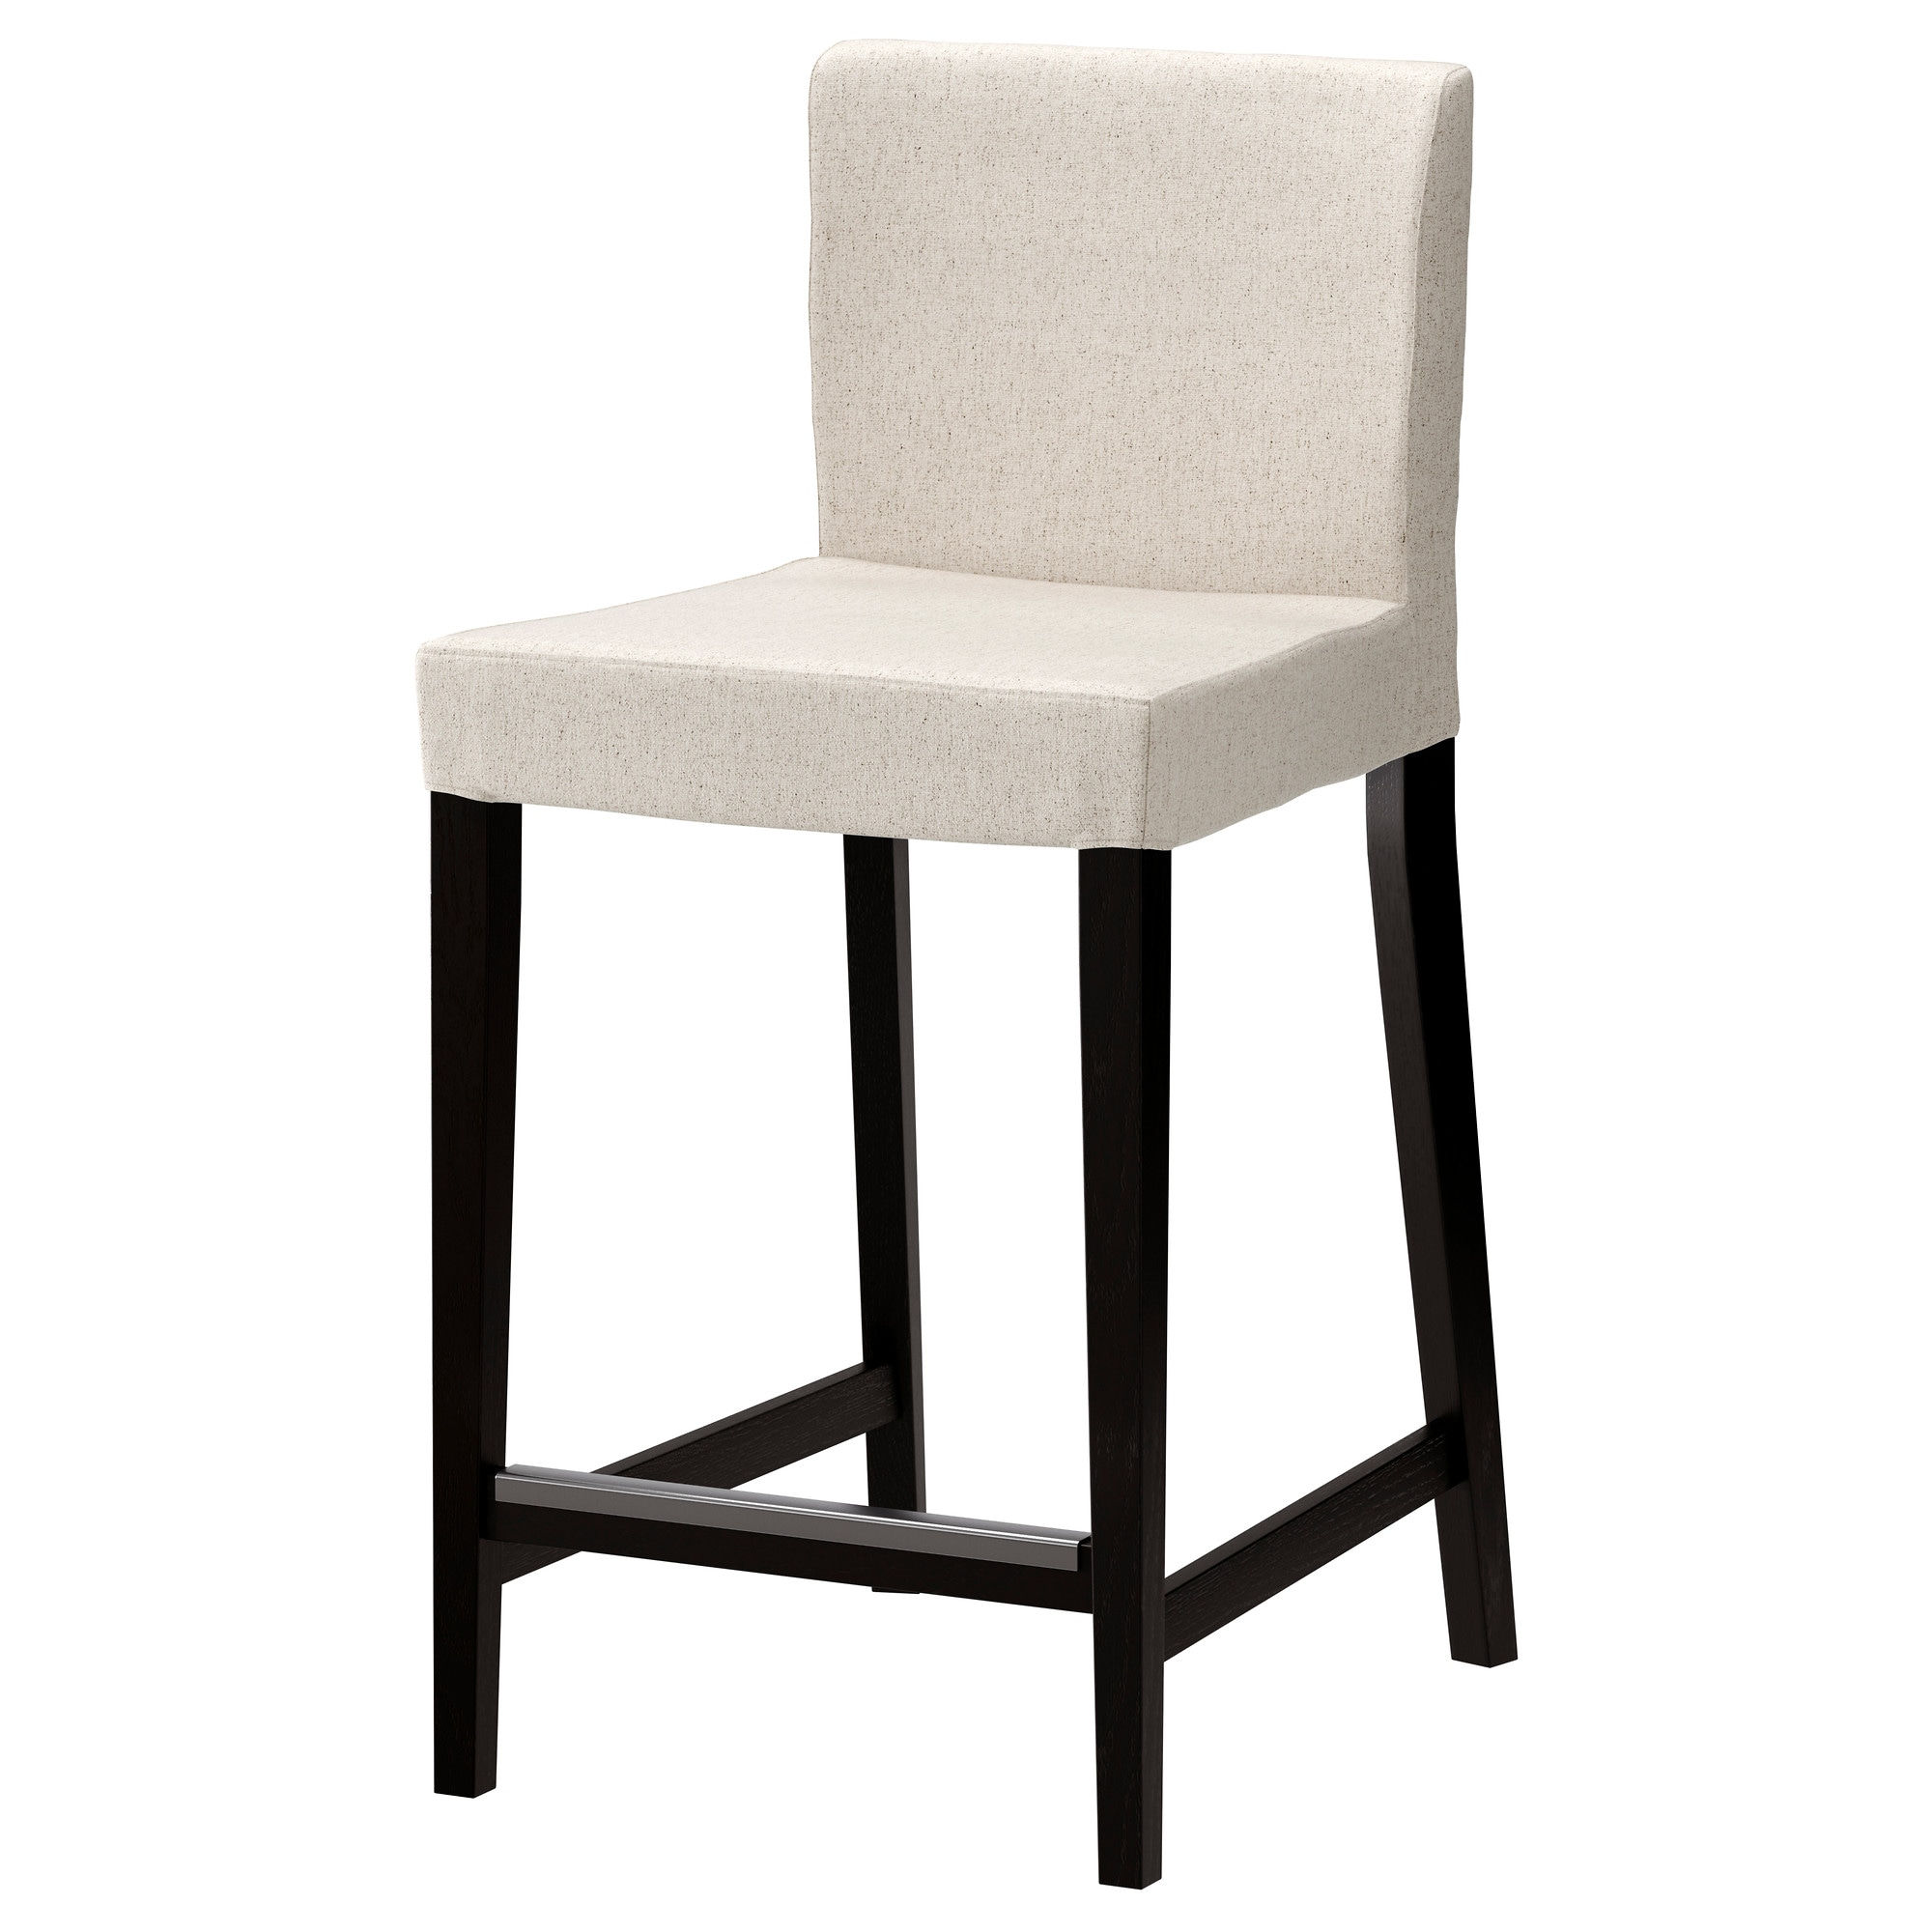 bar tables  chairs  bar tables  bar stools  ikea - henriksdal bar stool with backrest brownblack linneryd natural testedfor